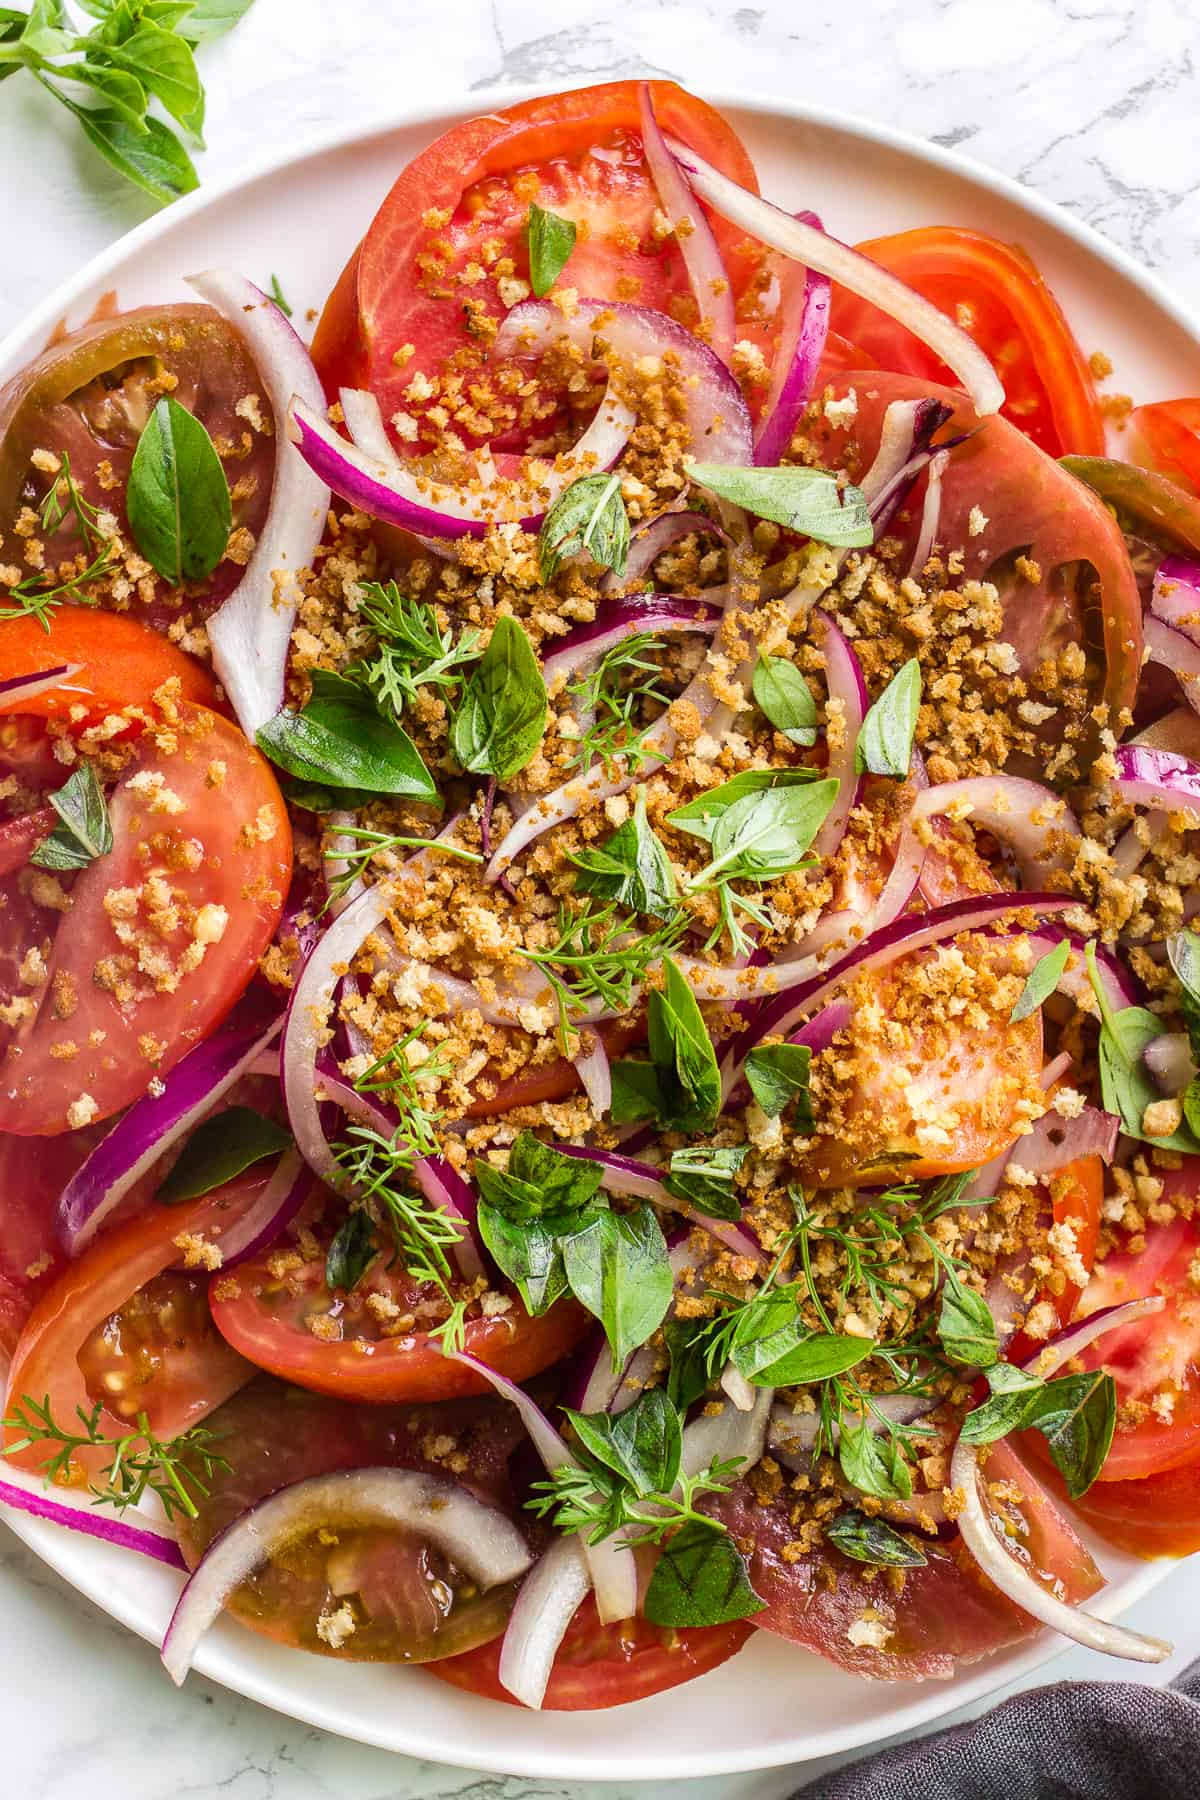 Summer tomato salad with red onions